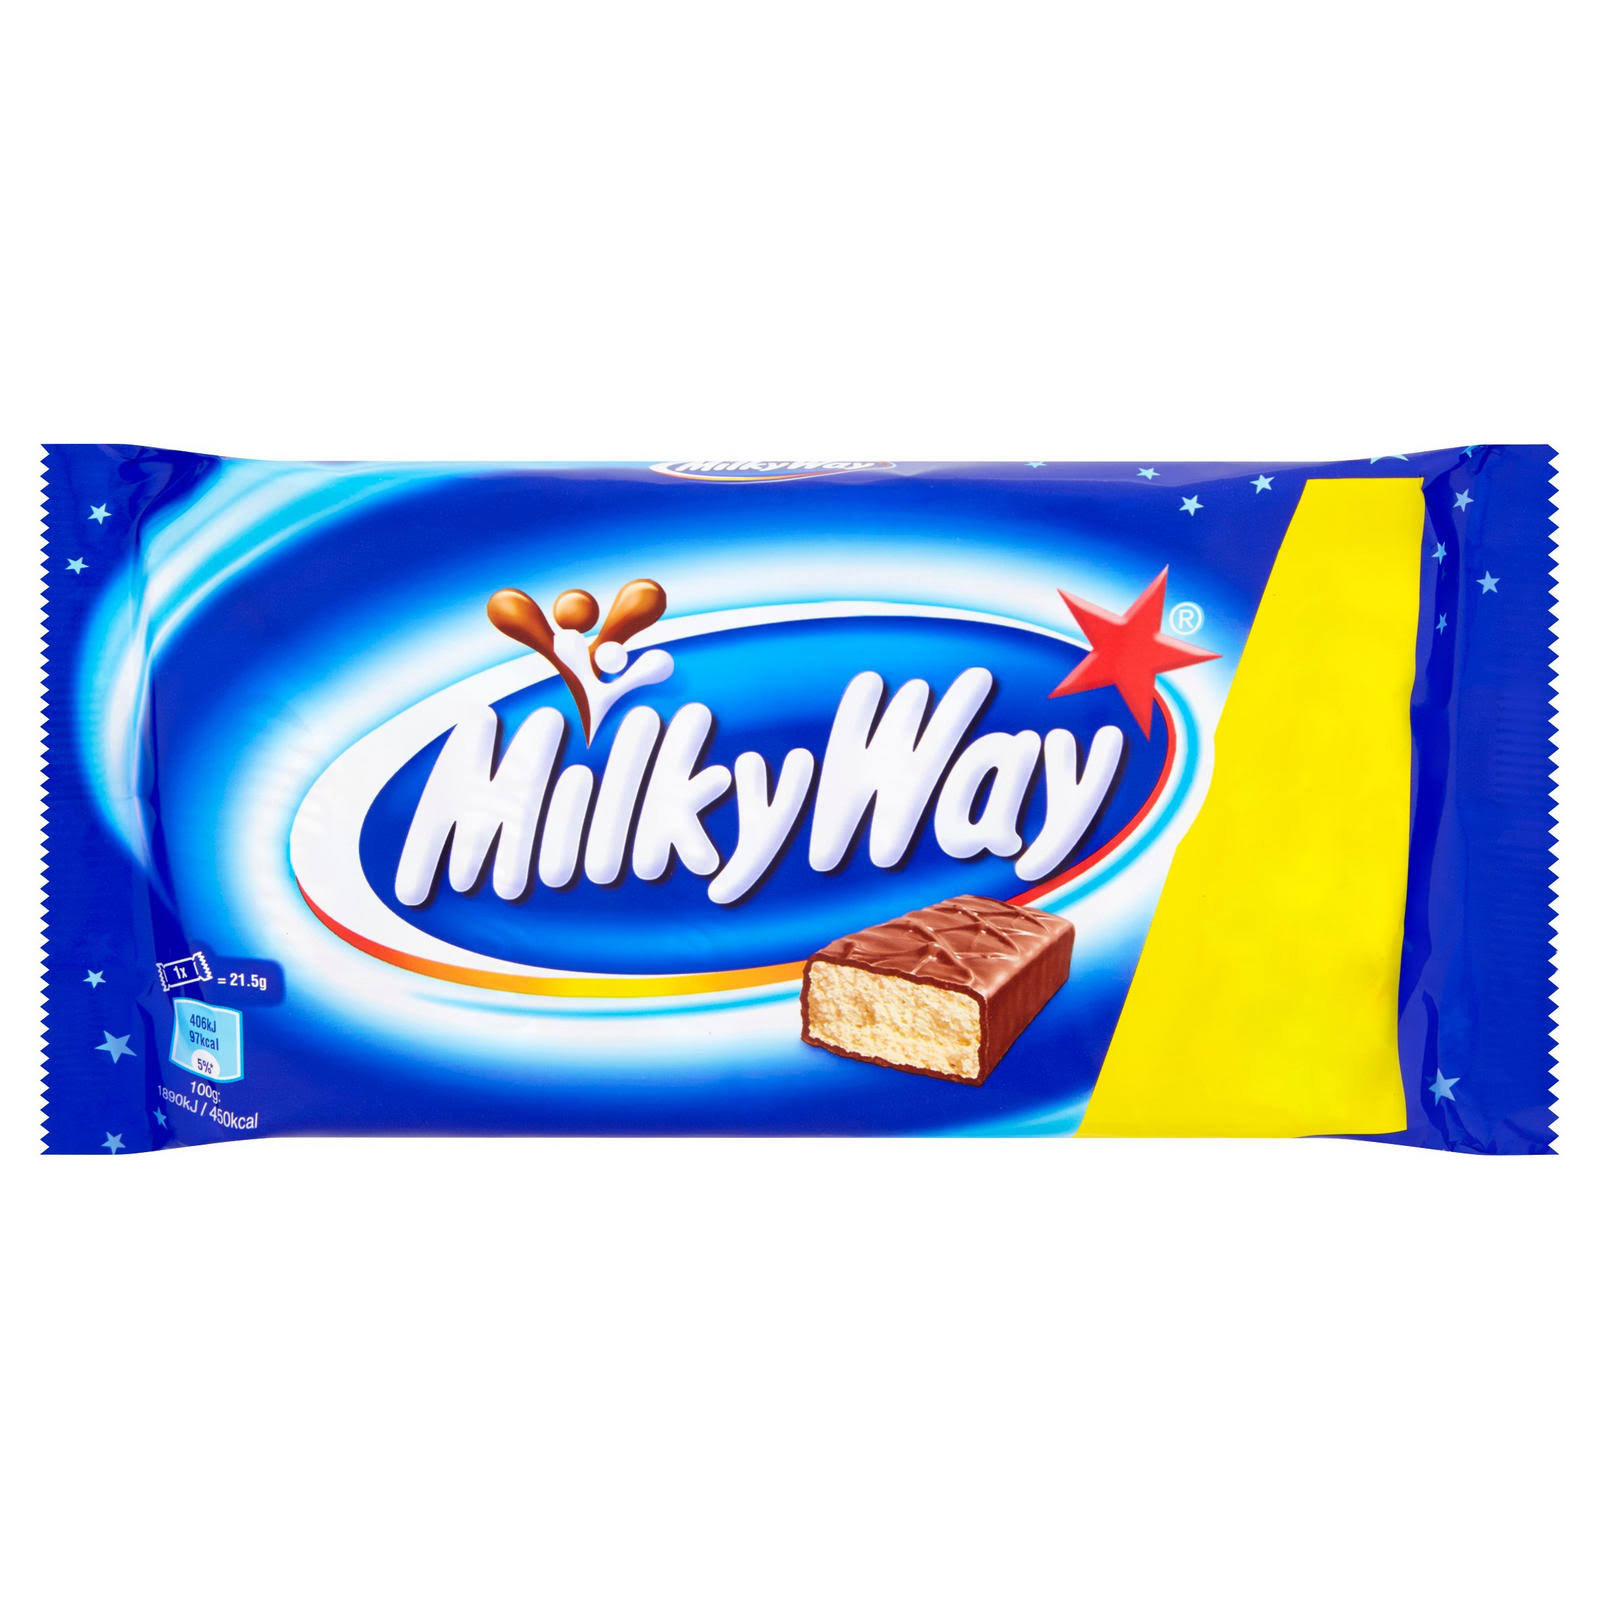 Milkway Multipack Chocolate Bars - 6pc, 21.5g